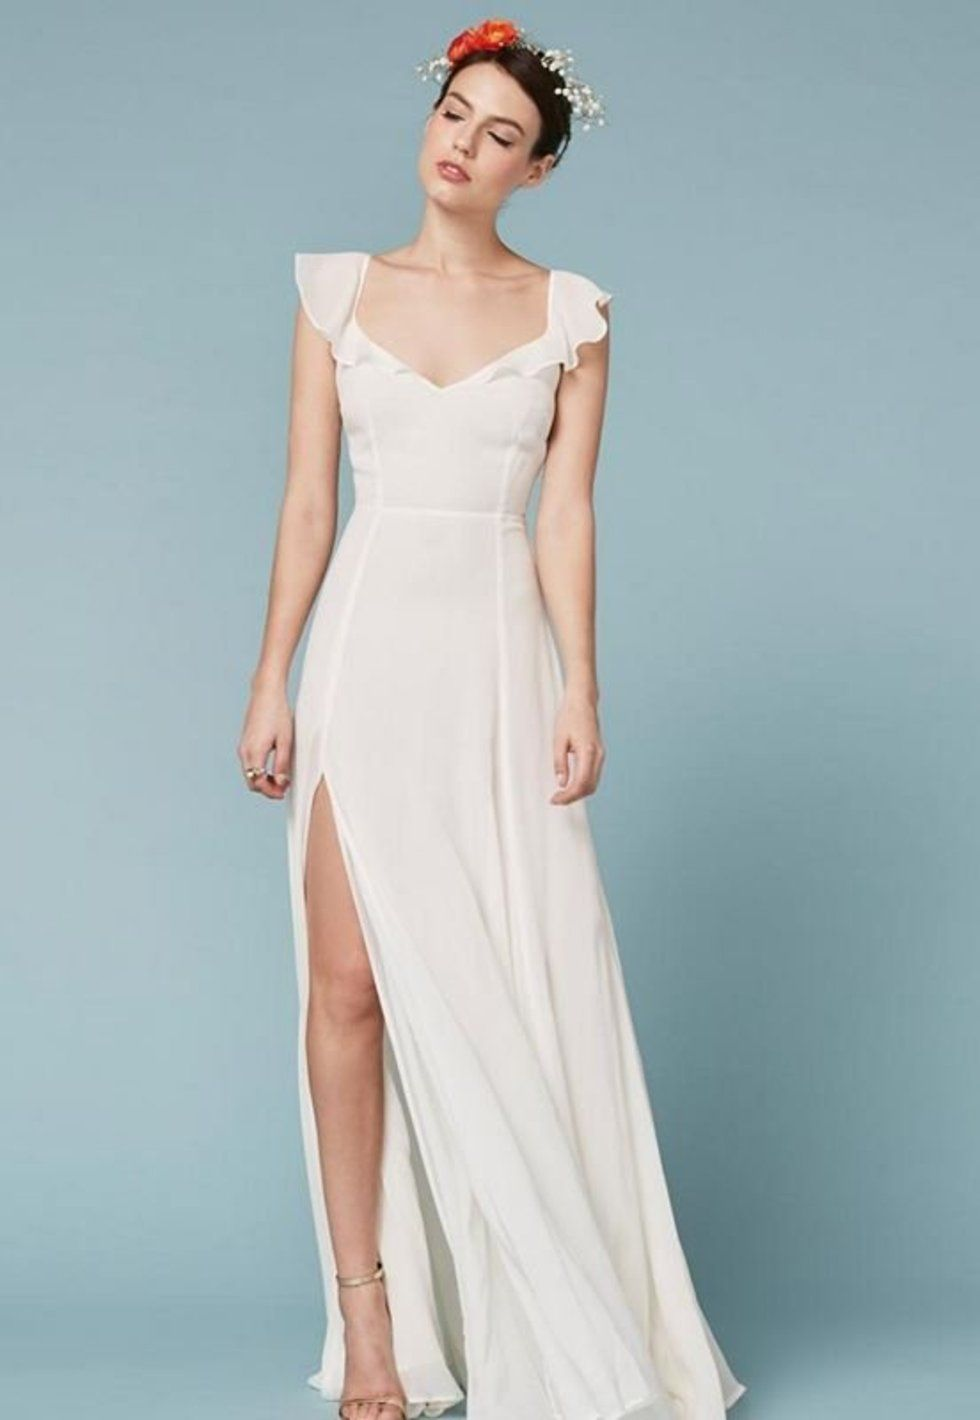 Reformation launches sustainable bridal dress line under £500   Vías